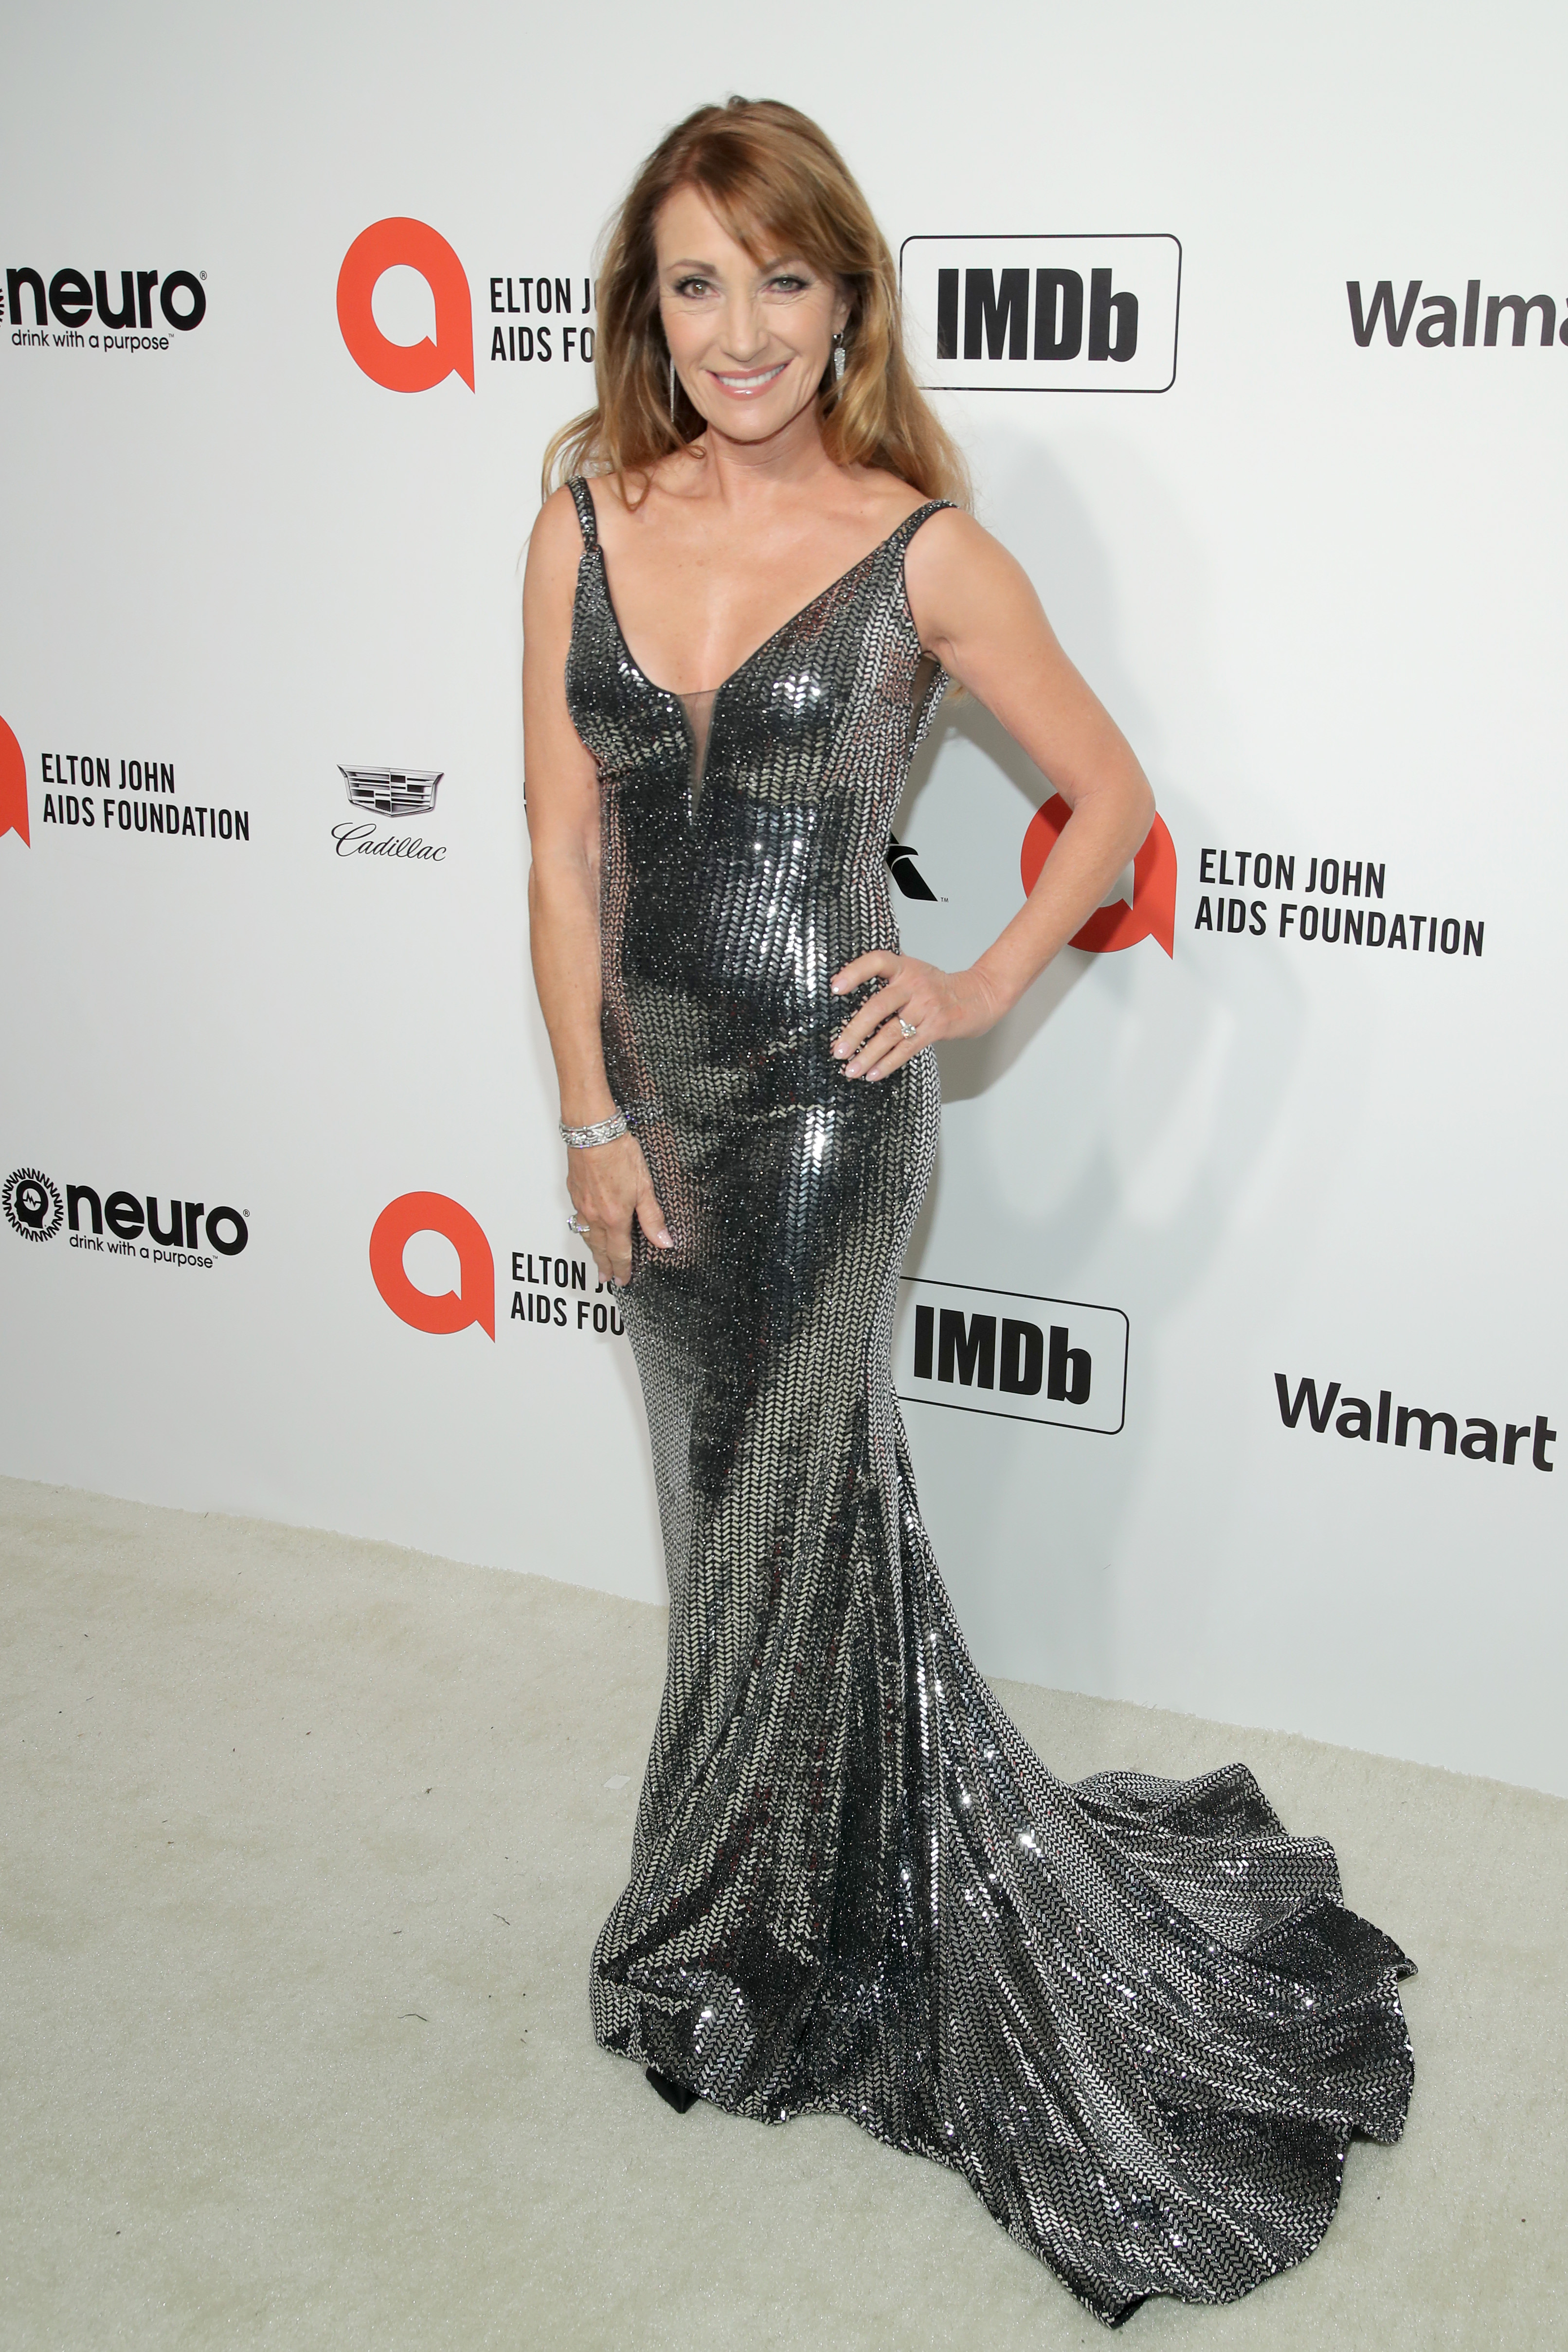 WEST HOLLYWOOD, CALIFORNIA - FEBRUARY 09: Jane Seymour attends the 28th Annual Elton John AIDS Foundation Academy Awards Viewing Party sponsored by IMDb, Neuro Drinks and Walmart on February 09, 2020 in West Hollywood, California. (Photo by Jemal Countess/Getty Images)